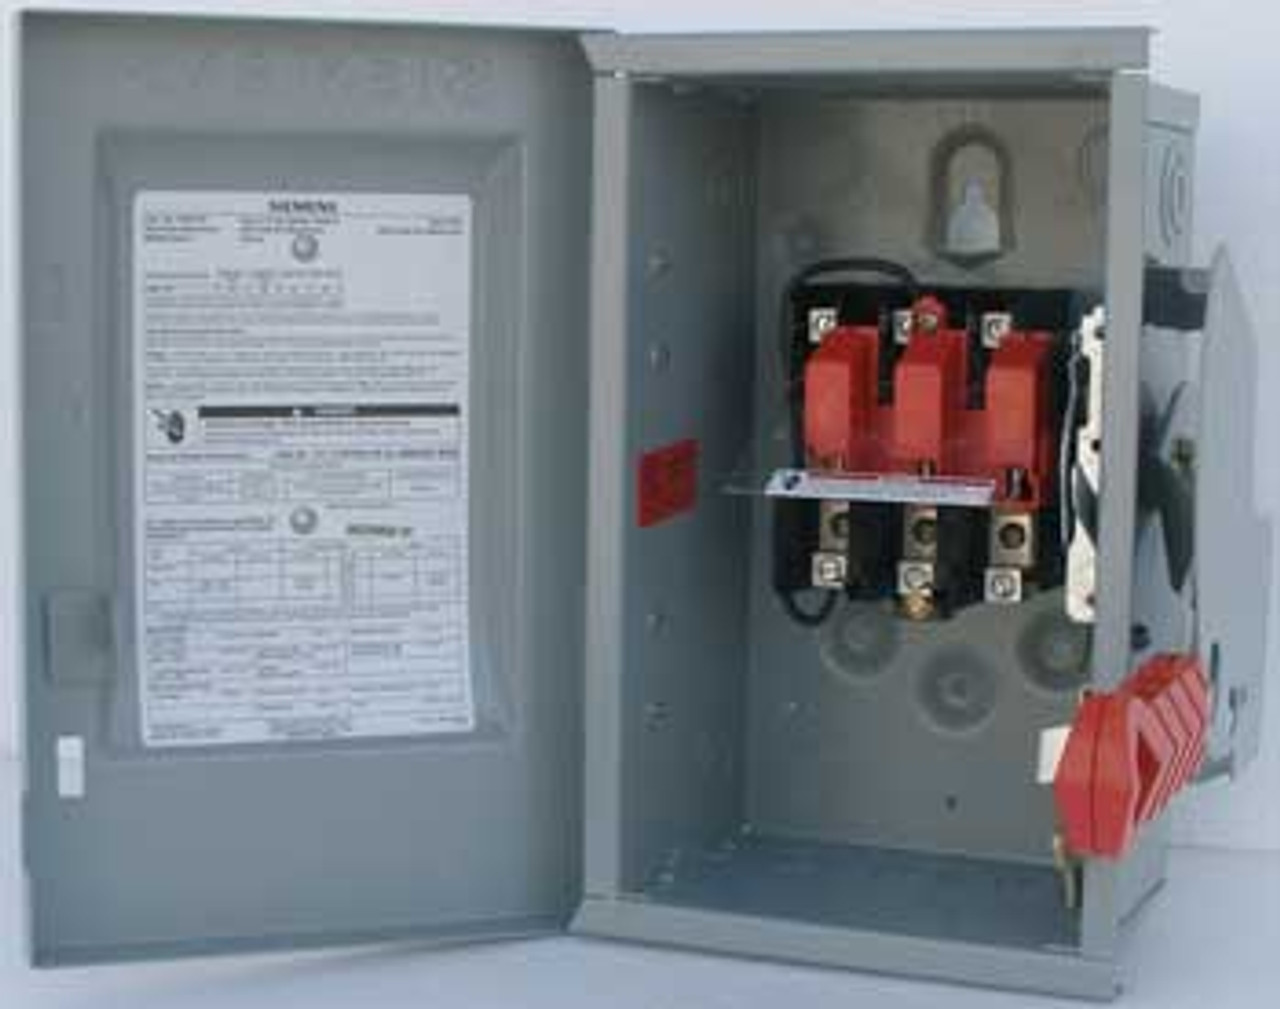 Siemens HNF261 30A 3P Heavy Duty NF Safety Switch 600V - Used